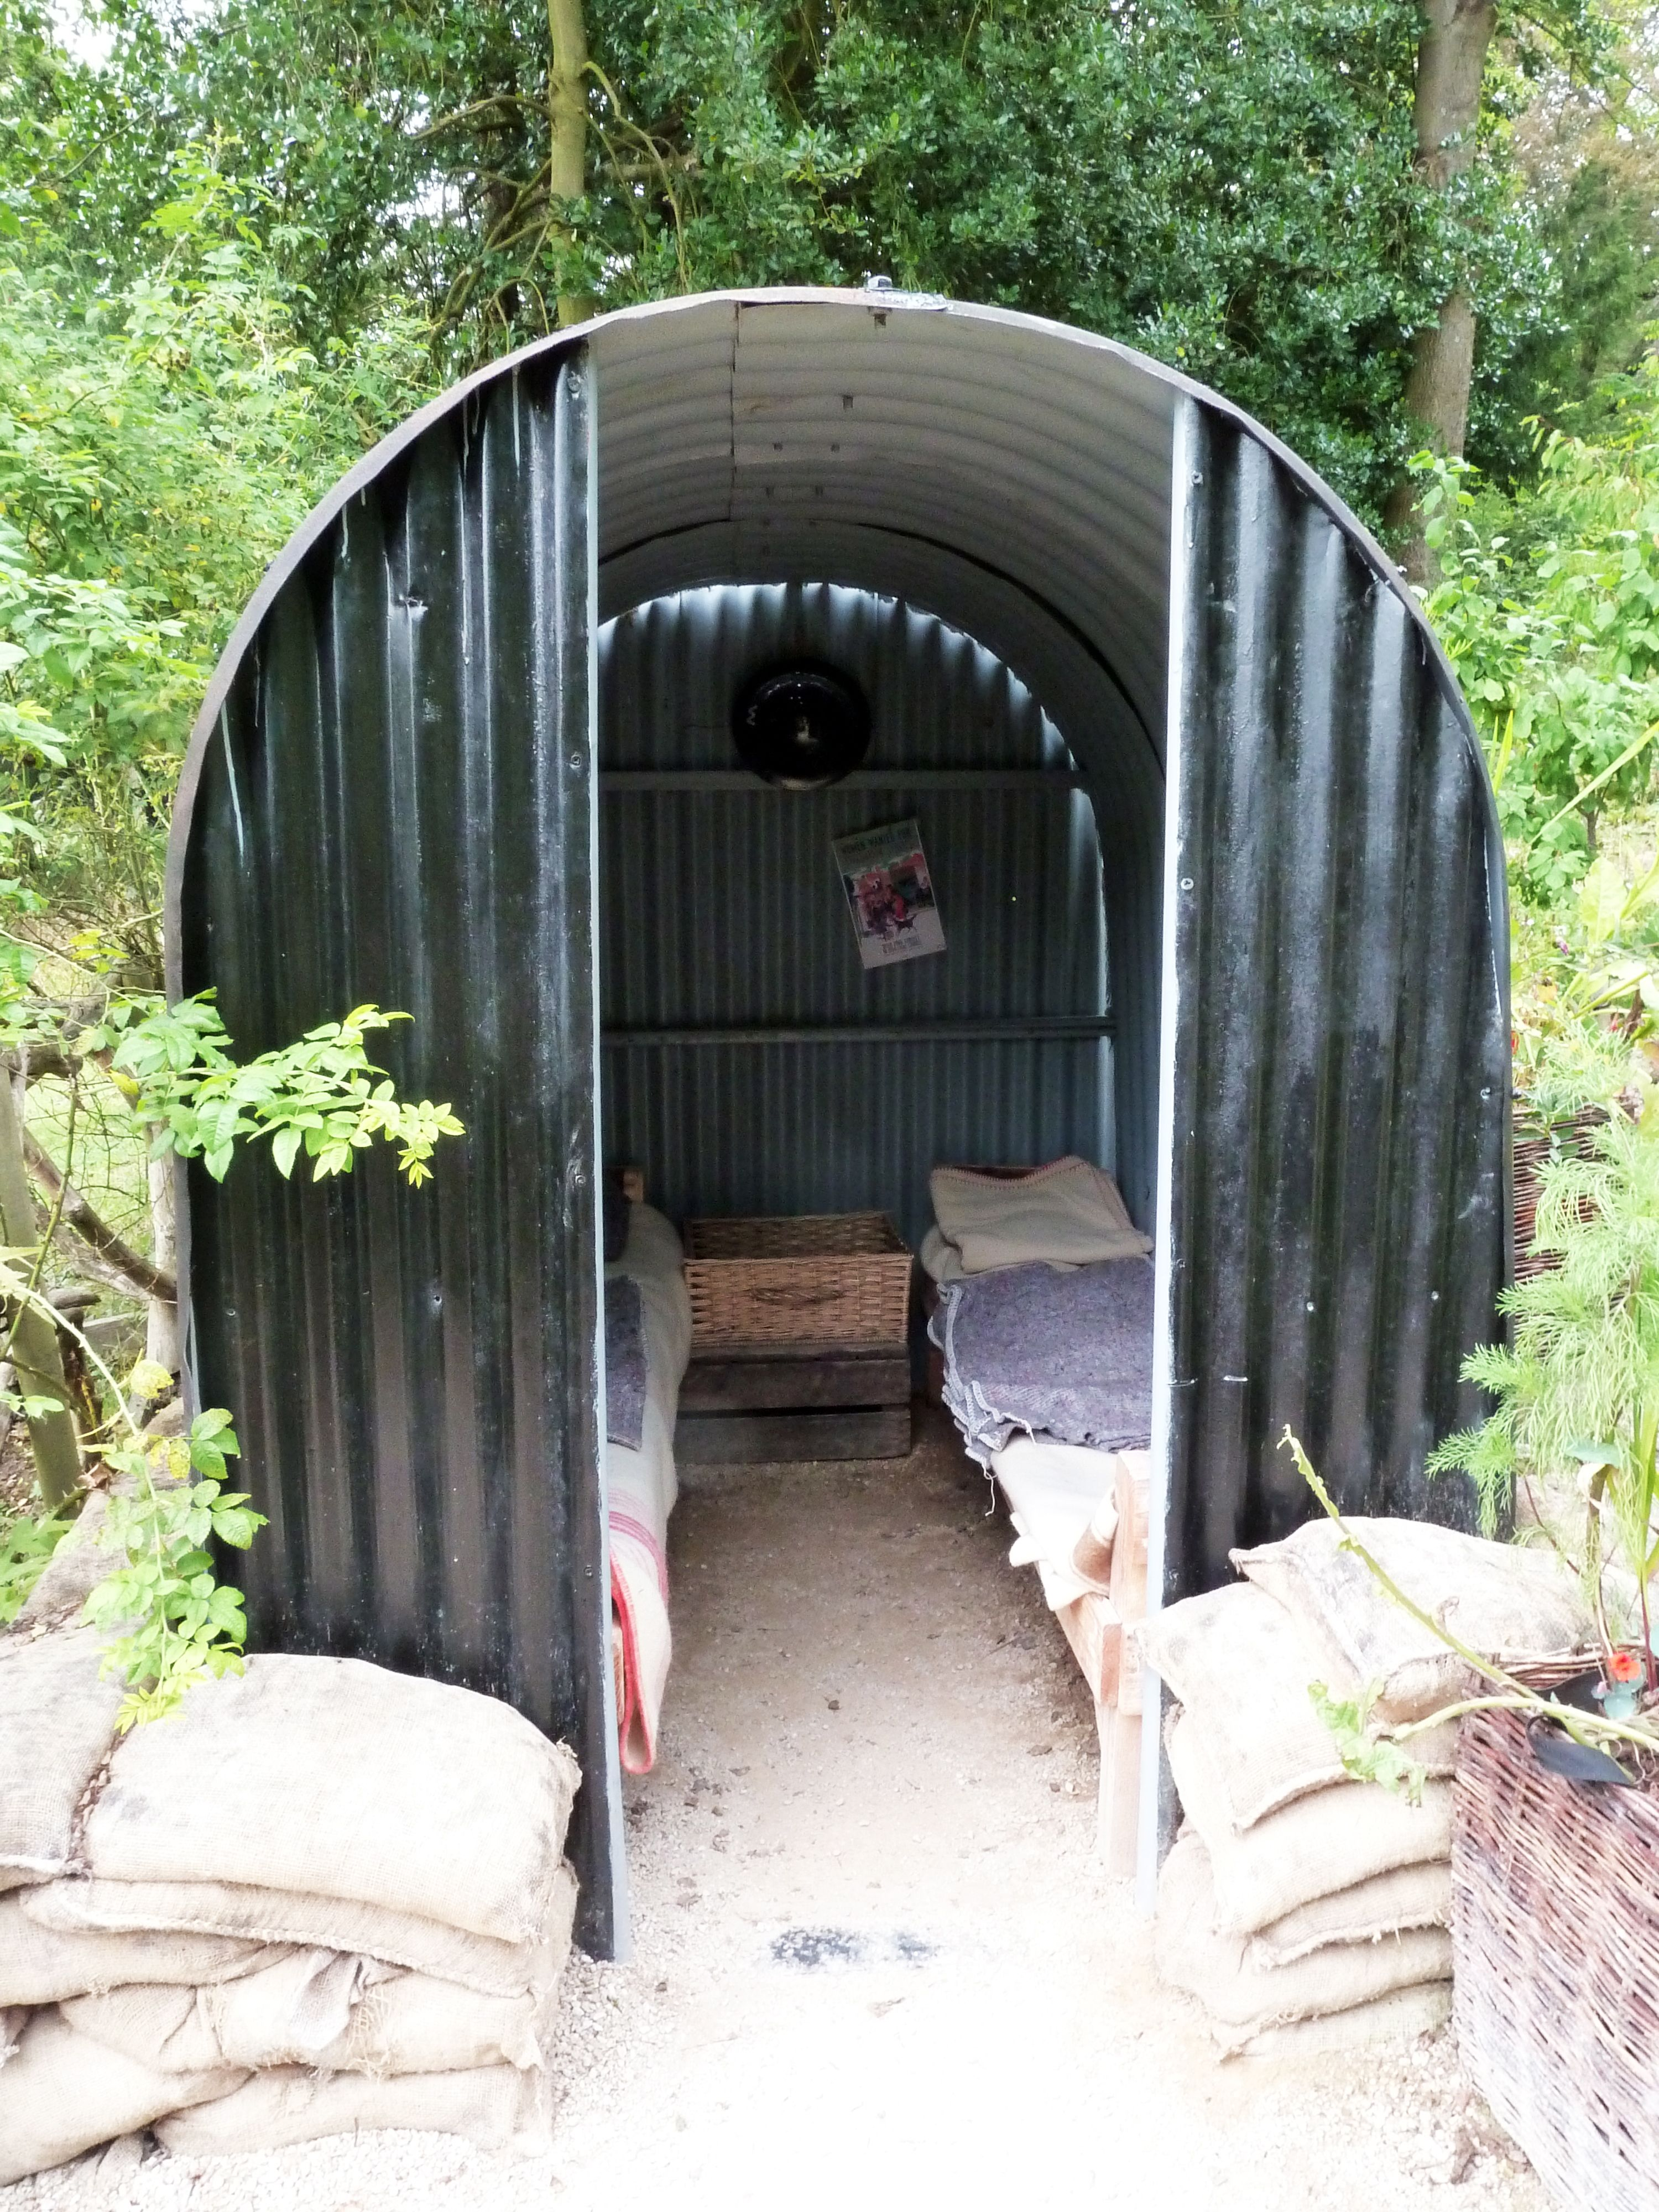 anderson shelter in chatsworth castle park uk air raid shelter